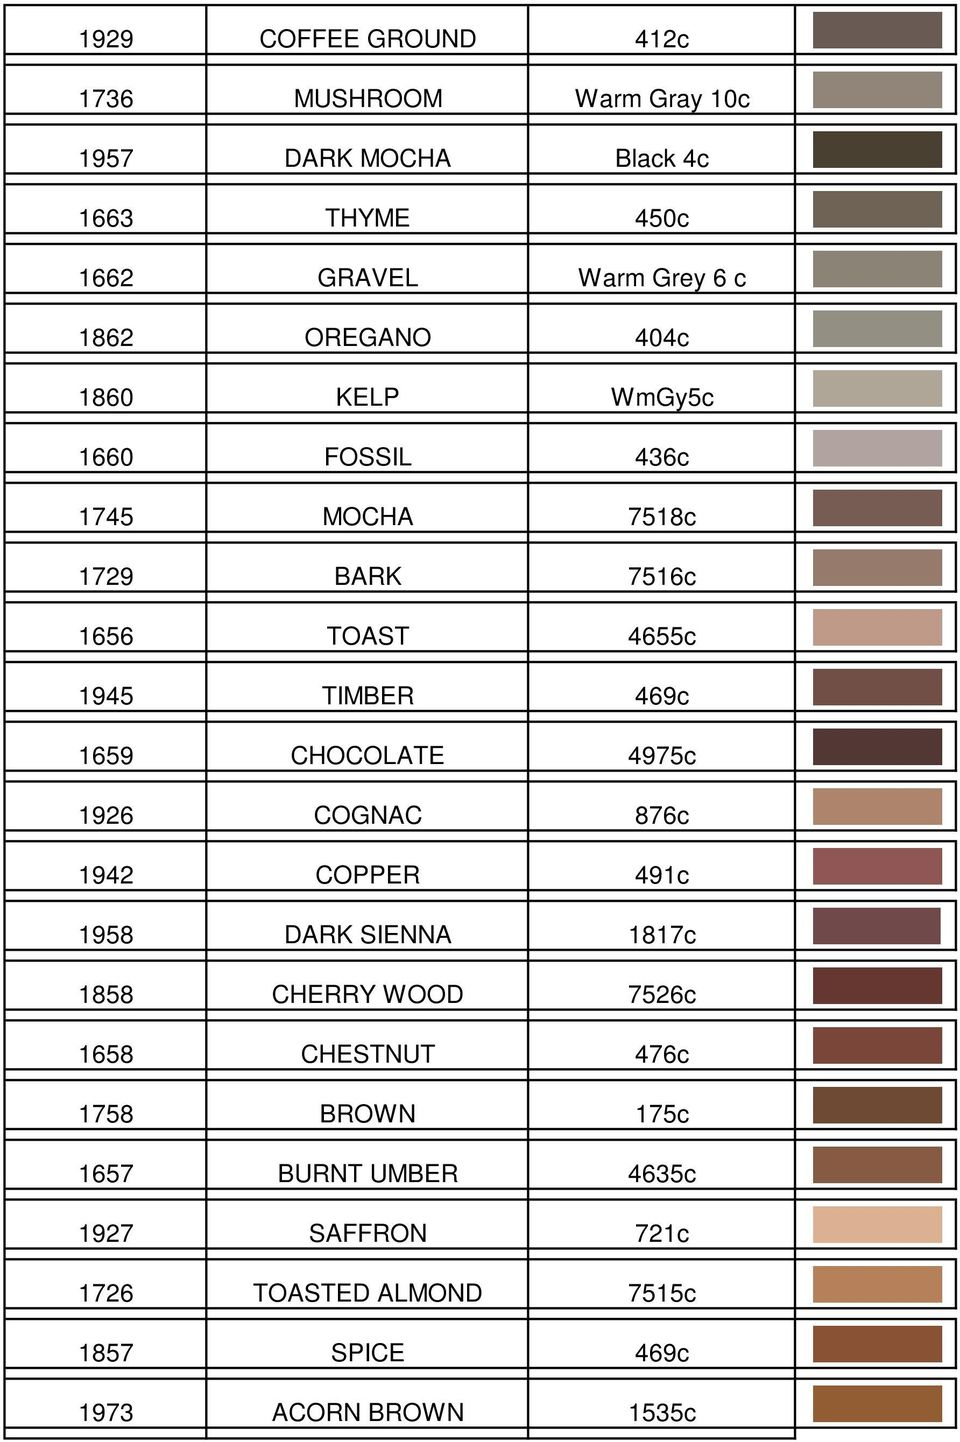 1659 CHOCOLATE 4975c 1926 COGNAC 876c 1942 COPPER 491c 1958 DARK SIENNA 1817c 1858 CHERRY WOOD 7526c 1658 CHESTNUT 476c